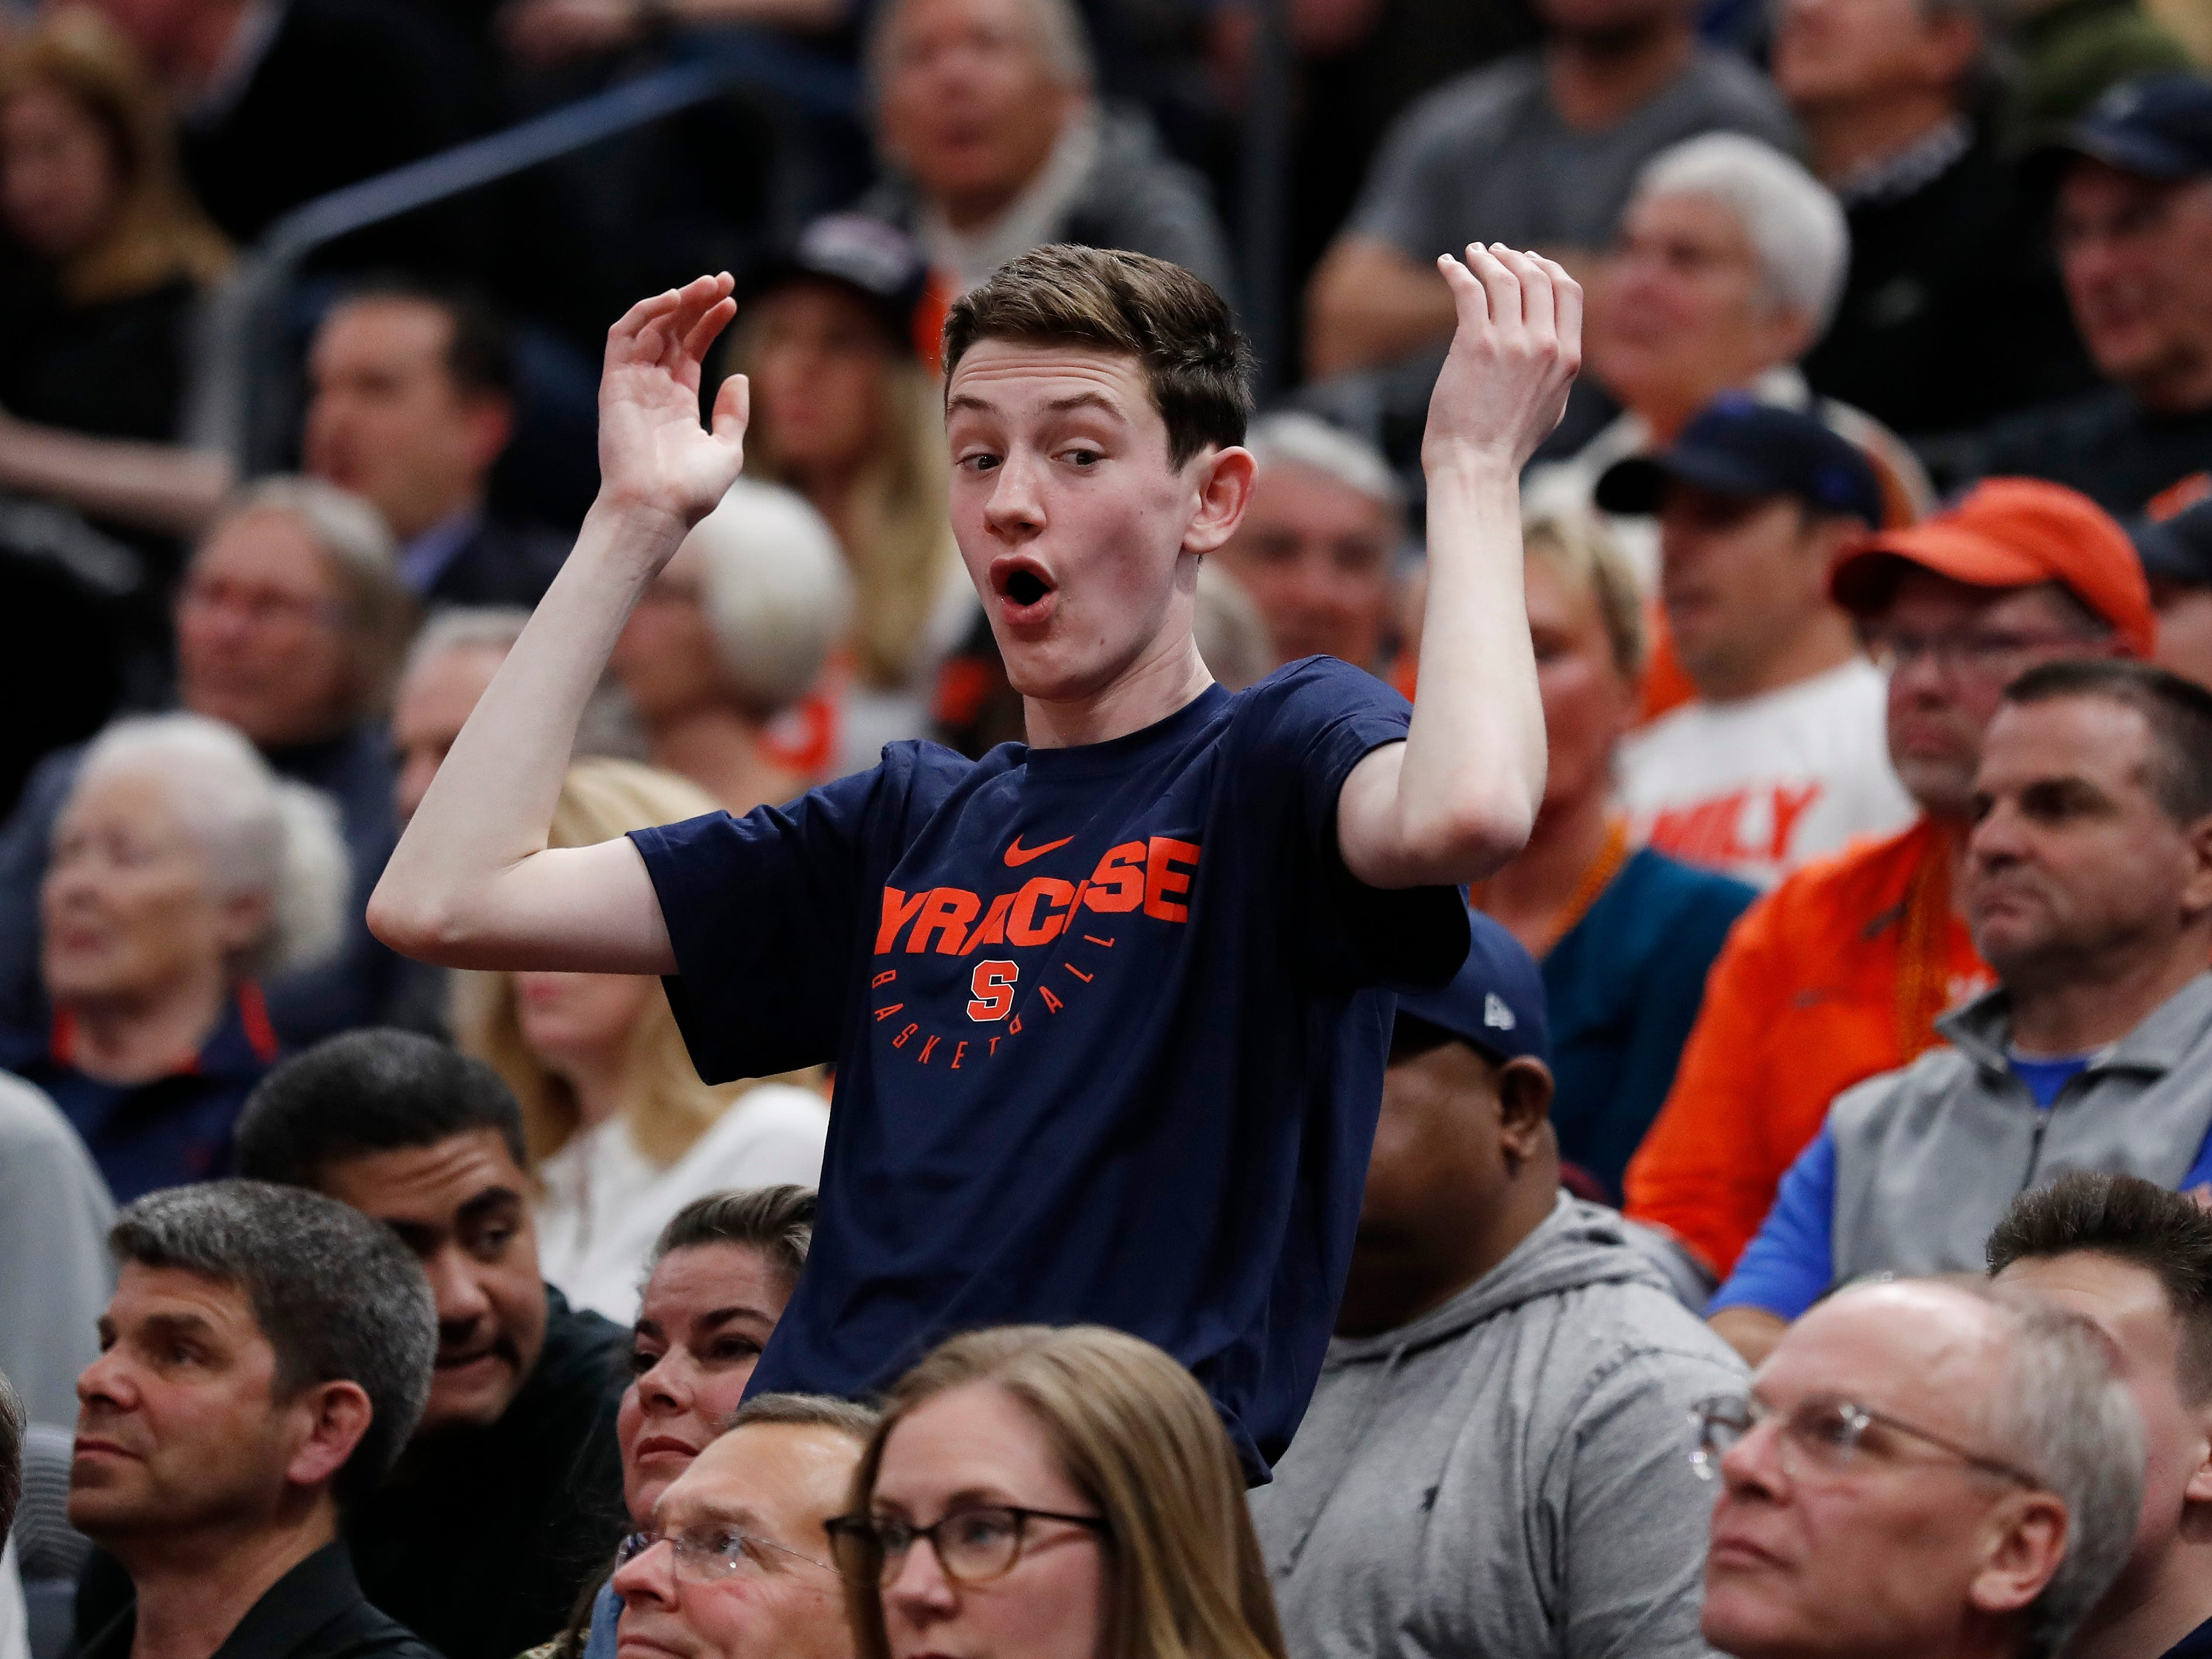 A Syracuse fans reacts to a call during the first half of the team's first-round game against Baylor in the NCAA men's college basketball tournament Thursday, March 21, 2019, in Salt Lake City.